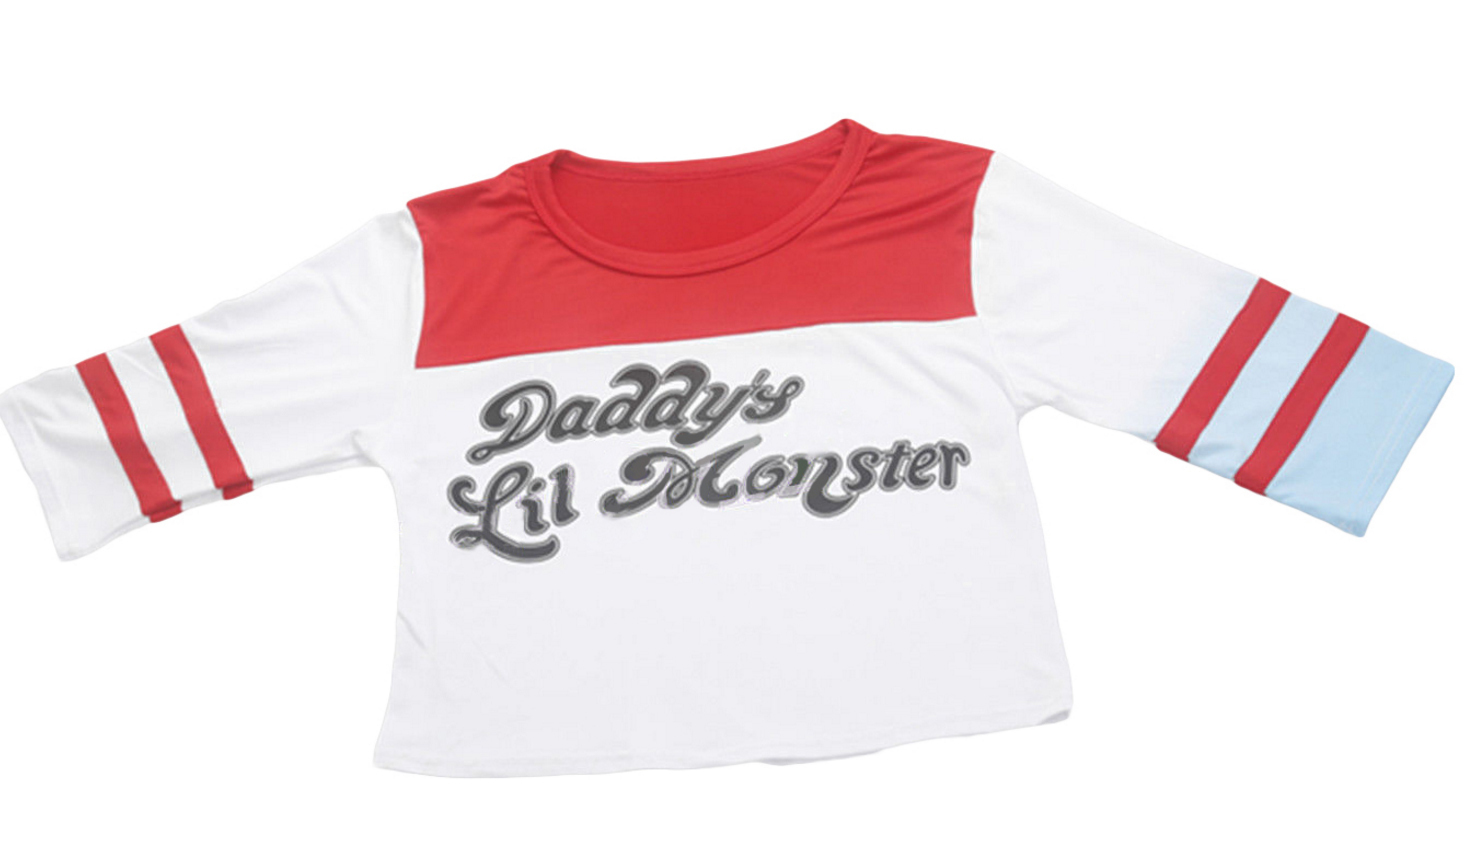 6a0788bcbff8 Harley Quinn Daddy's Lil Monster T Shirt Suicide Squad